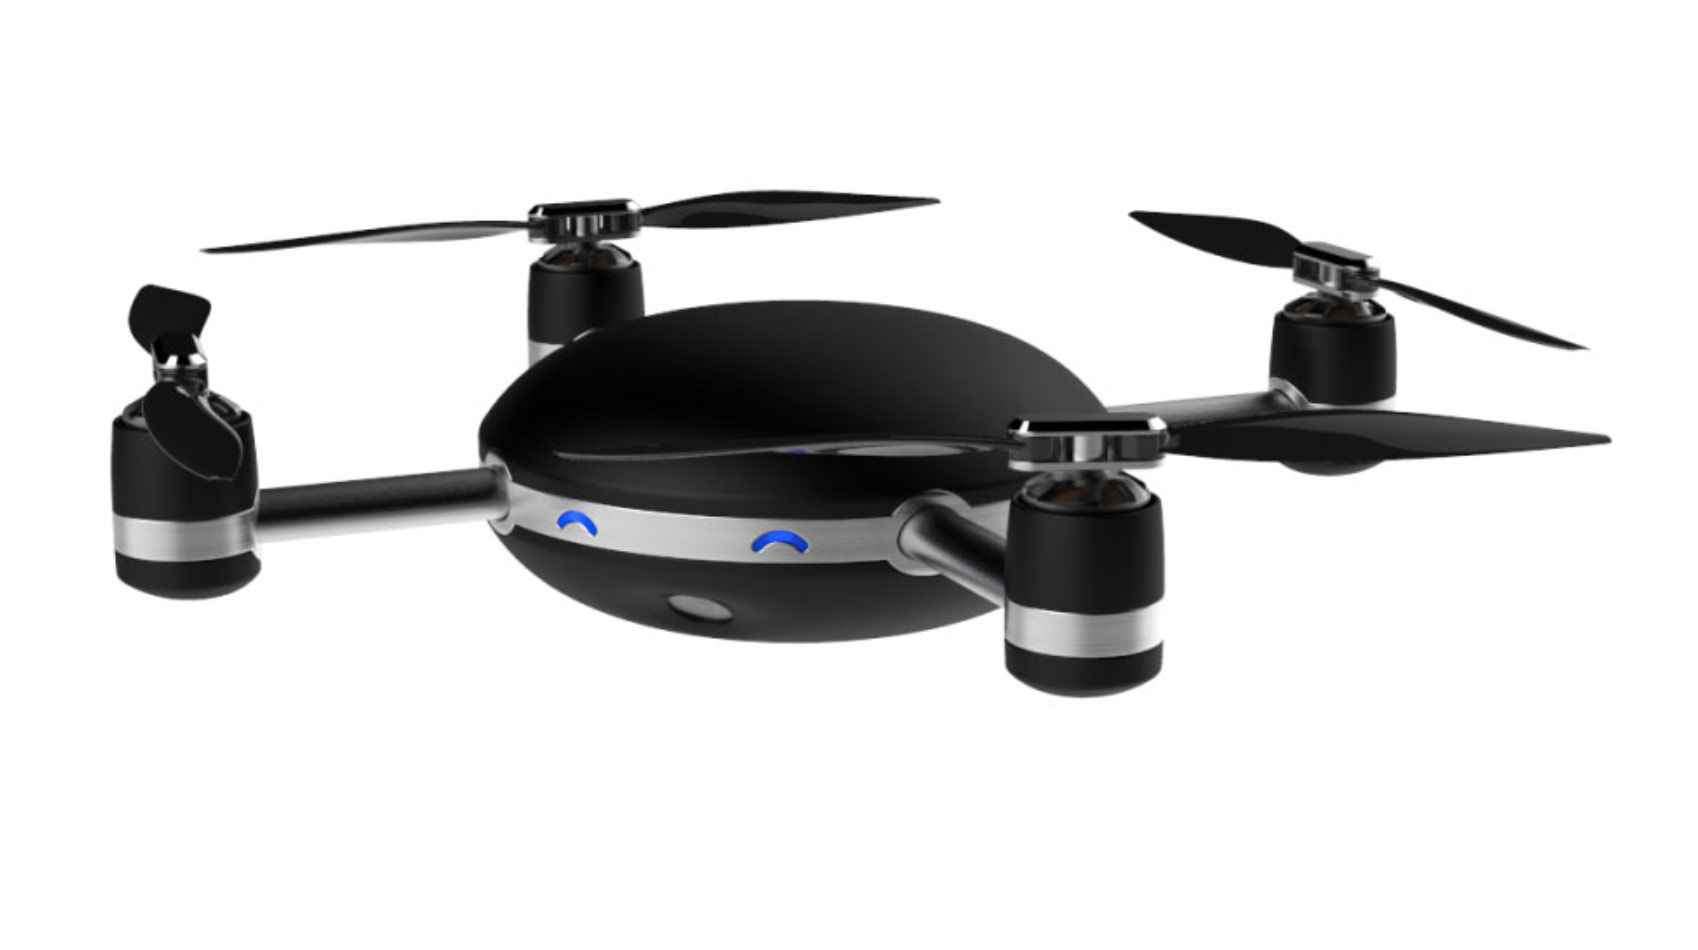 cinema drone with Meet The Lily Drone Intelligent Aerial Cameraman on Drone Locronan likewise Search And Rescue By Drone moreover Winterville Guide moreover Droni Professionali moreover Gopro Will Start Selling Its Six Camera Vr Rig On August 17th.